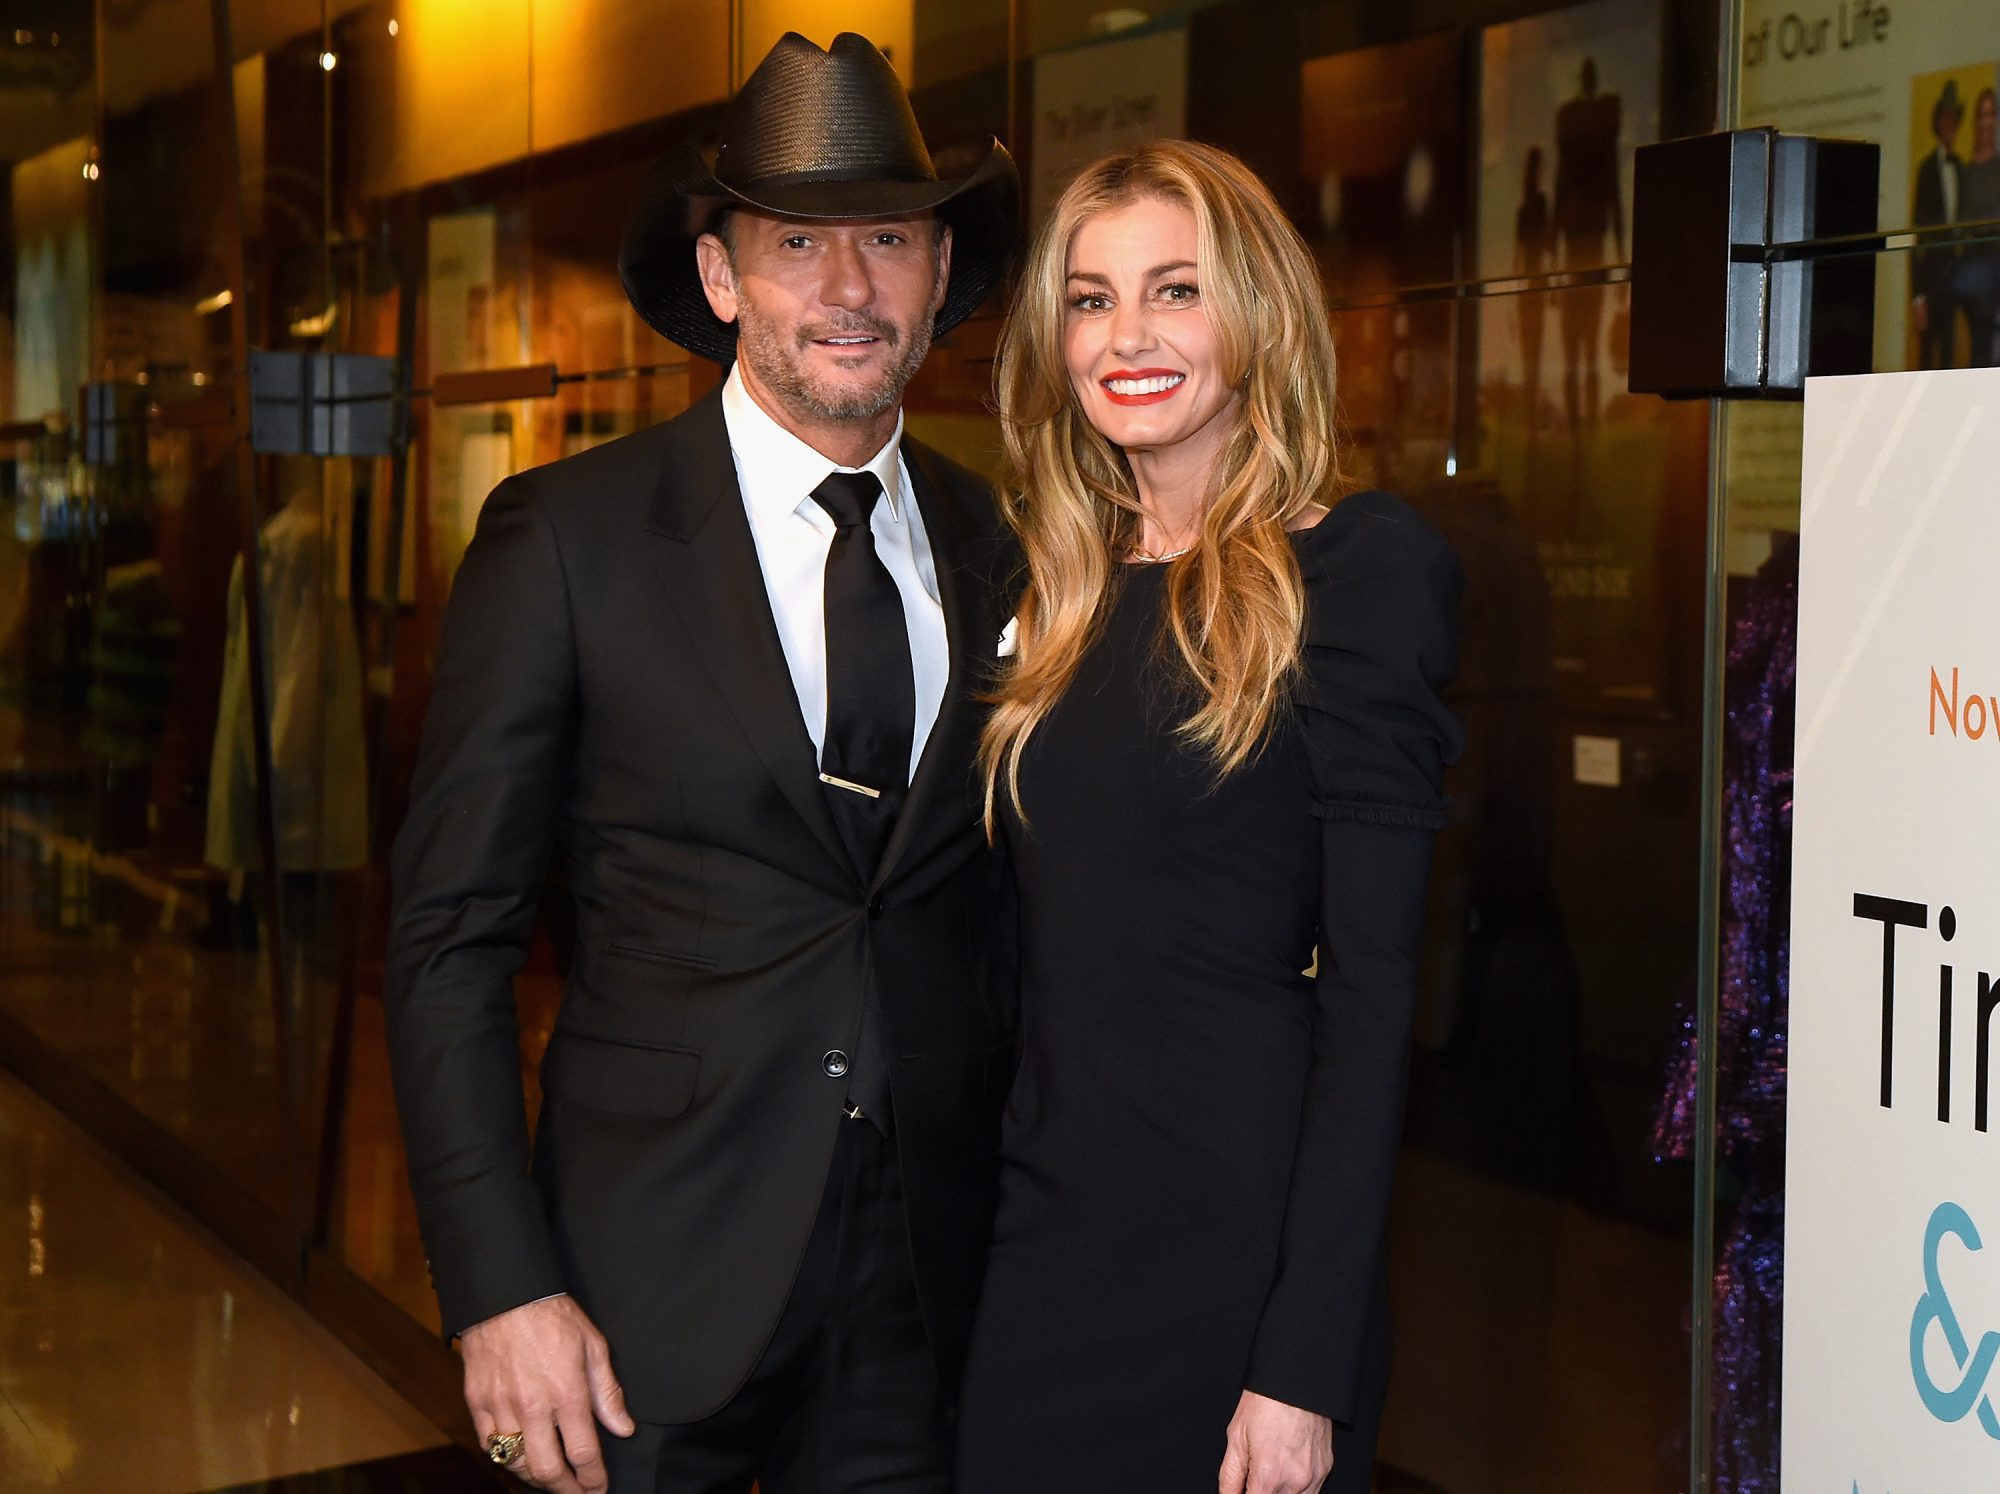 Country Music Hall of Fame and Museum Debuts Tim McGraw and Faith Hill Exhibition